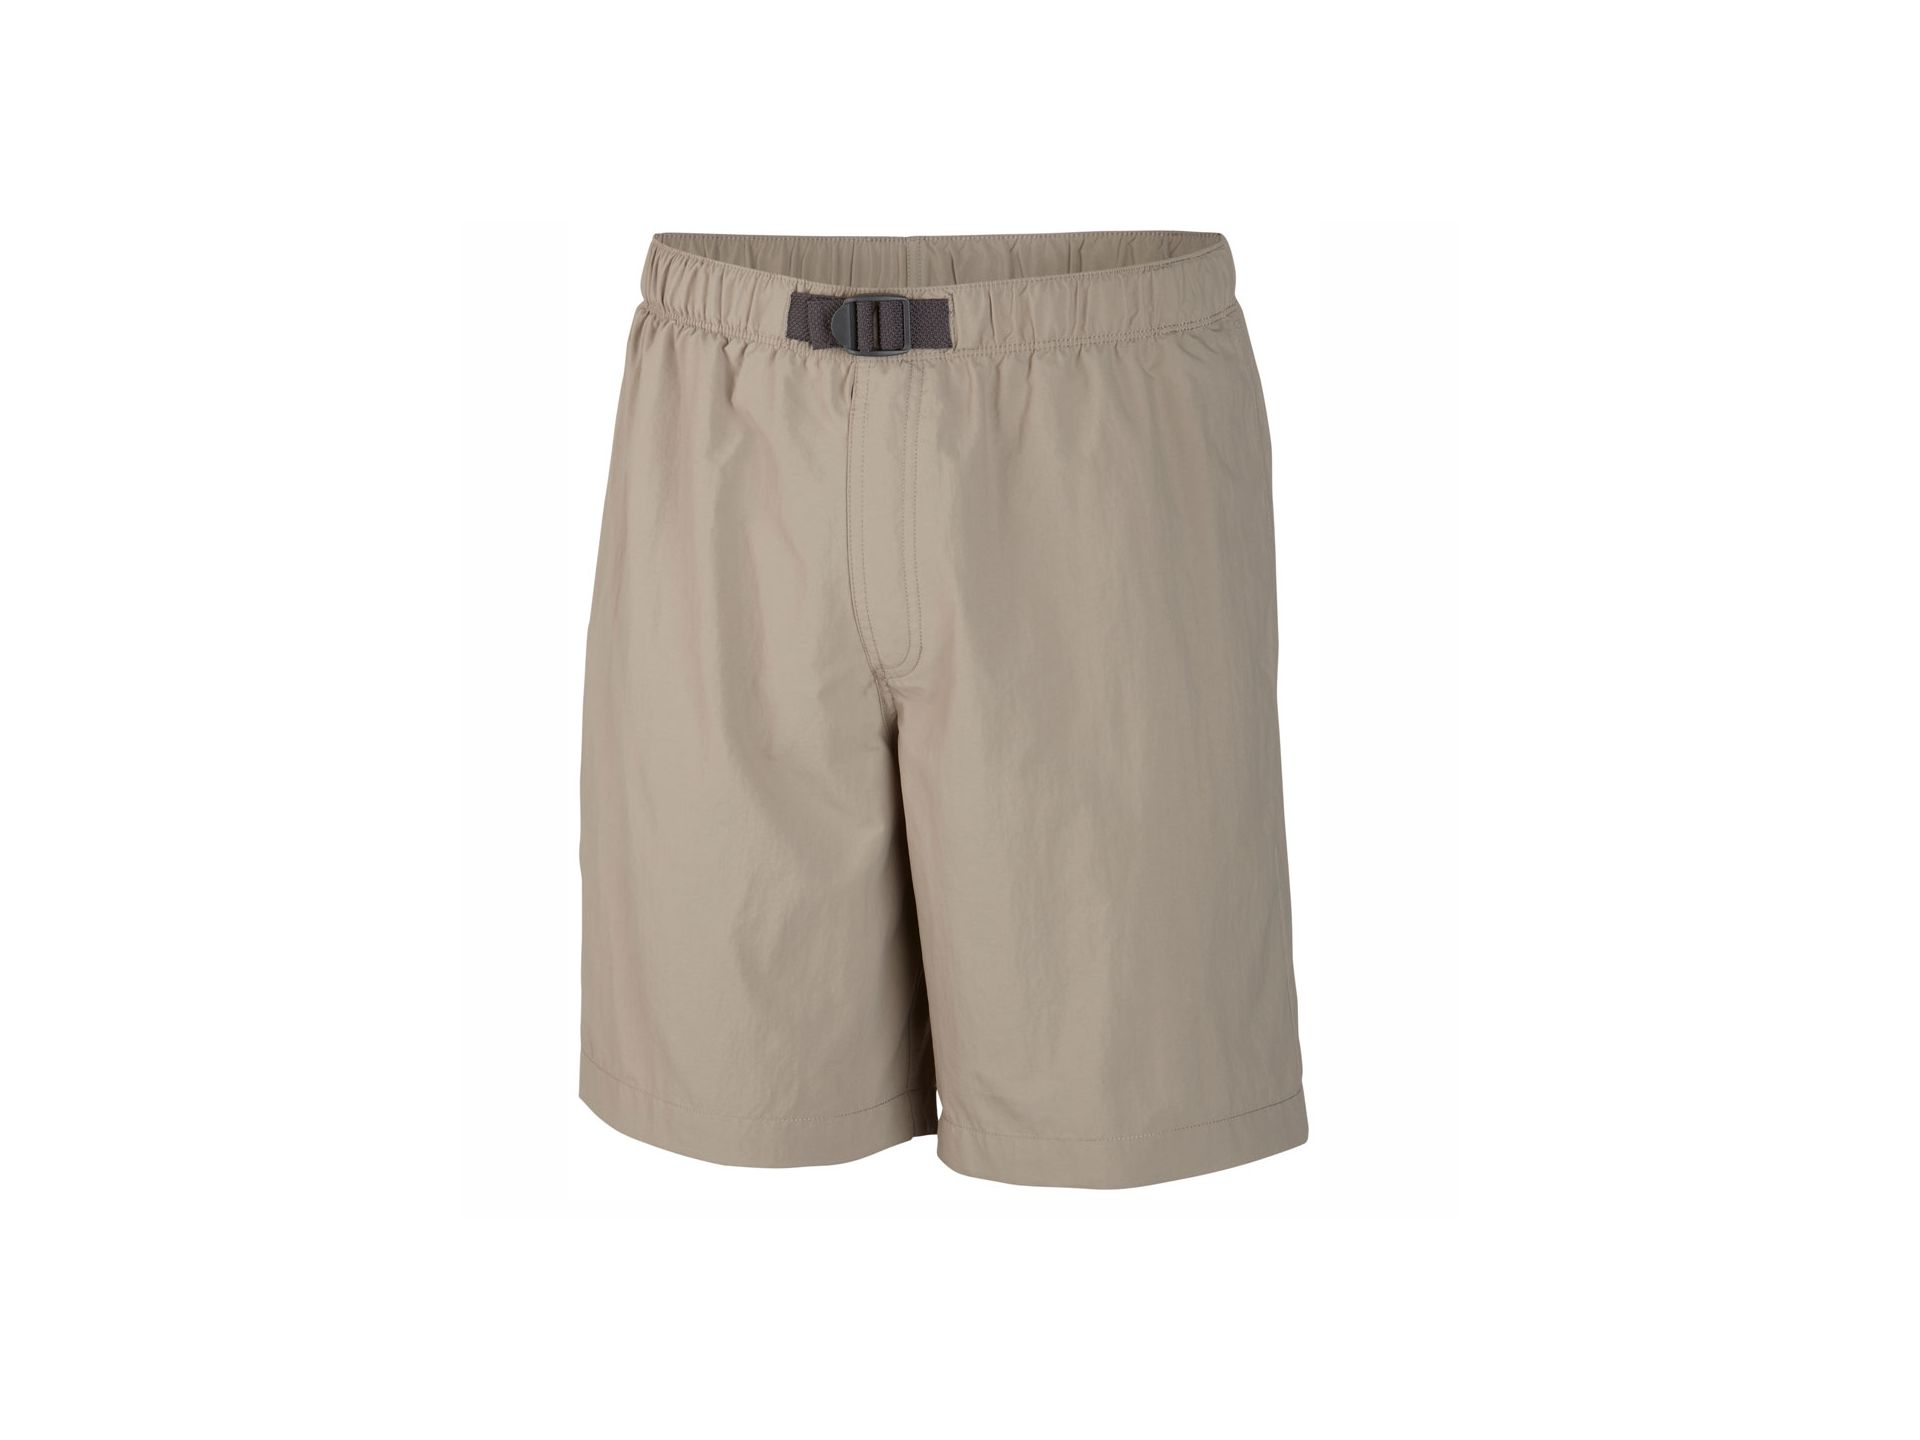 Columbia Men's Whidbey II Water Short - Tusk - Medium